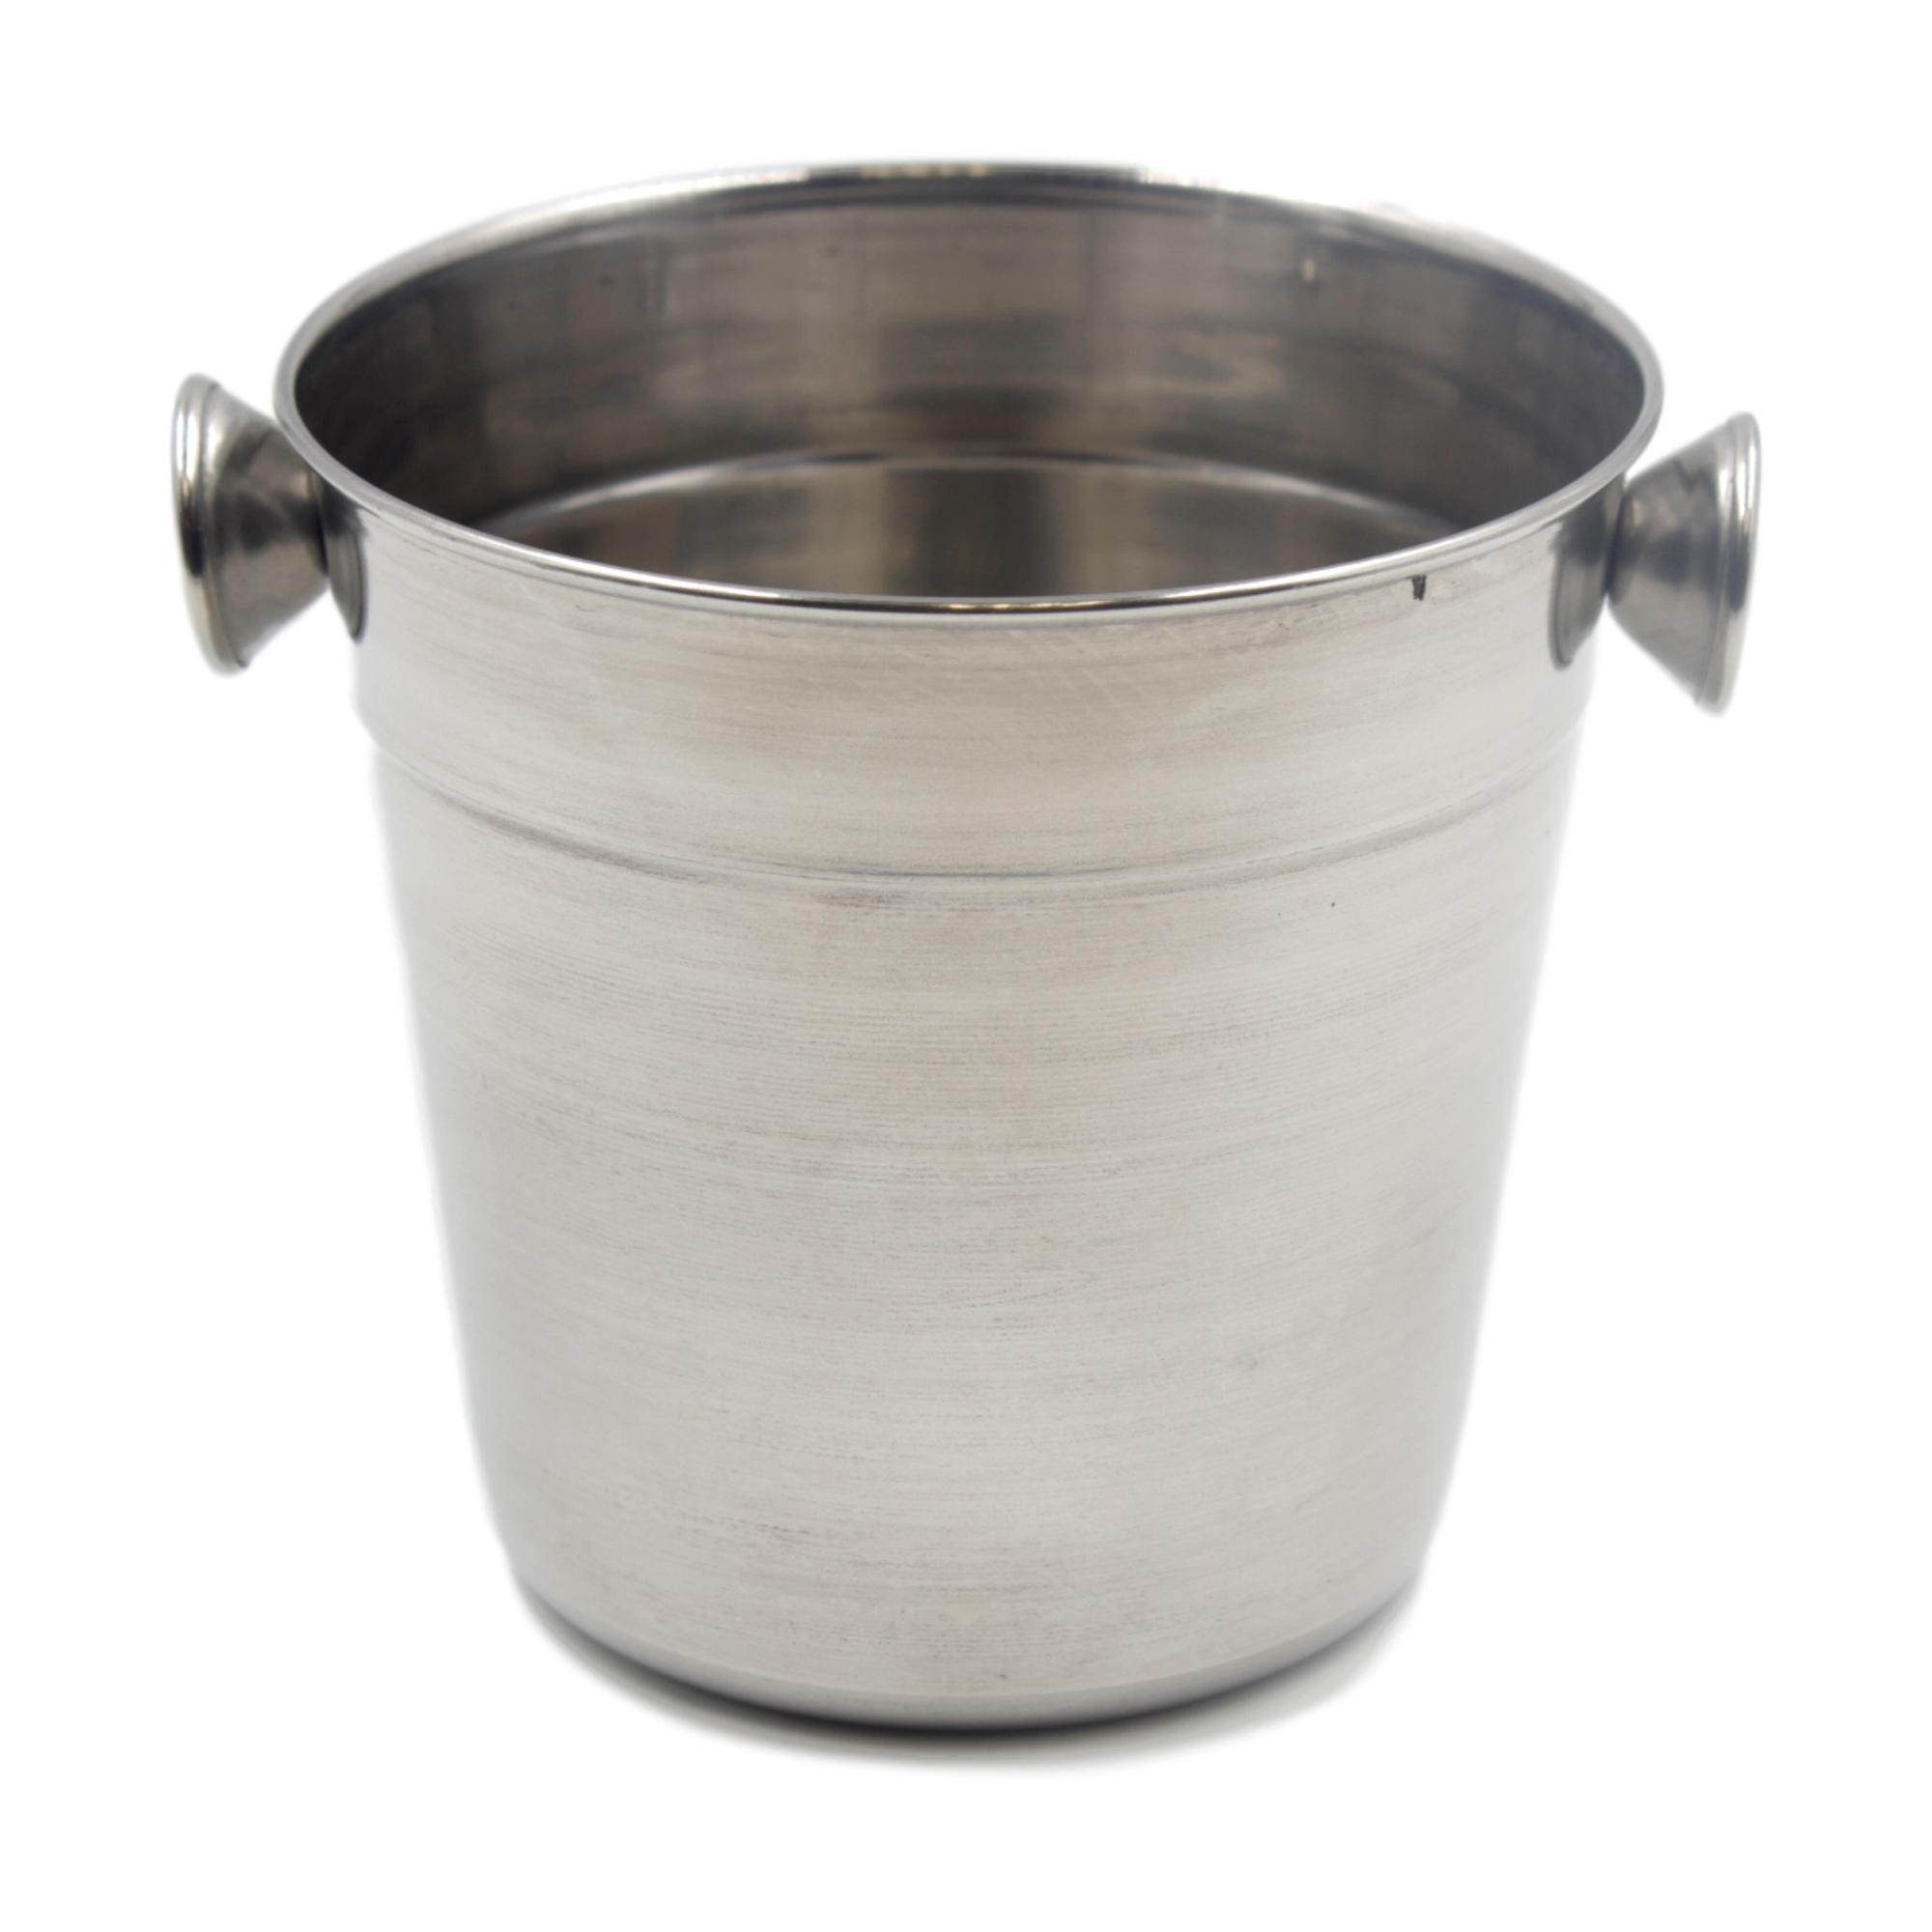 Mini Stainless Steel Ice Bucket H10cm Blendboutique